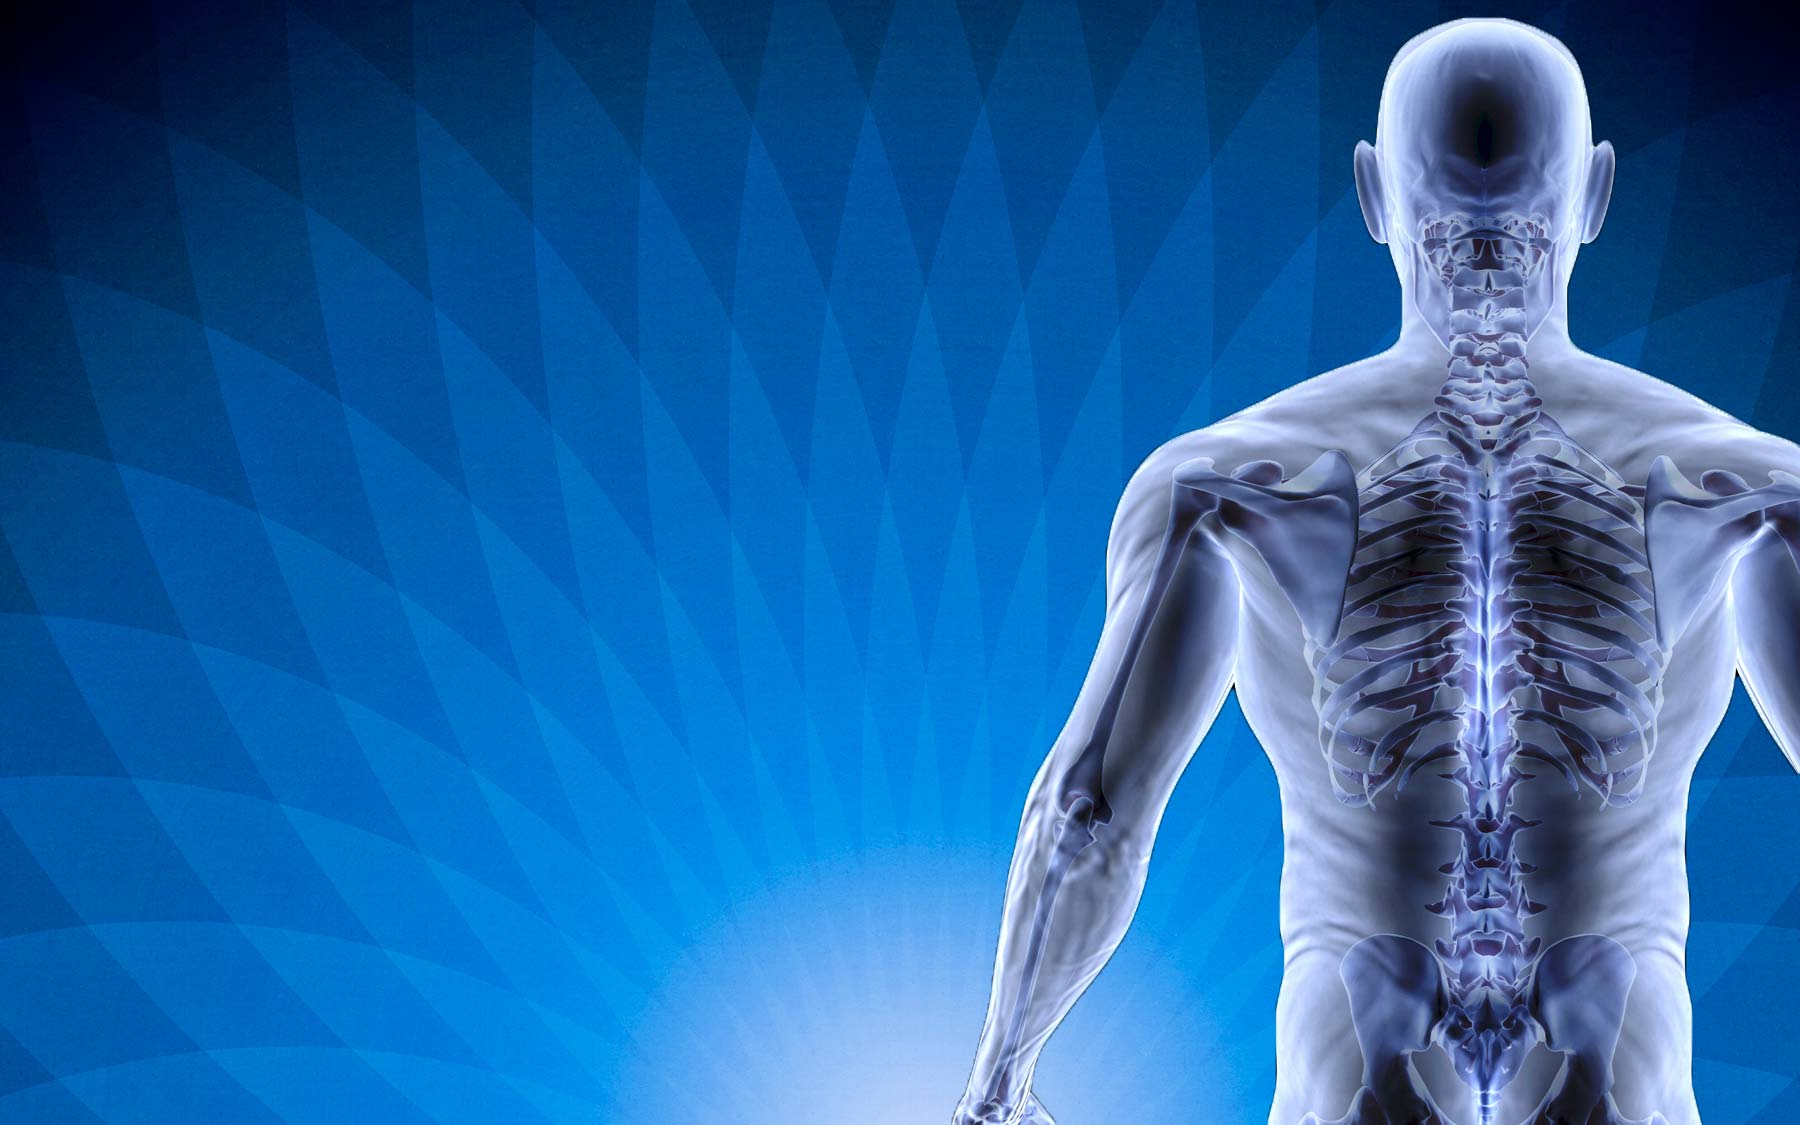 Chiropractors, Physiotherapists and Ostepaths